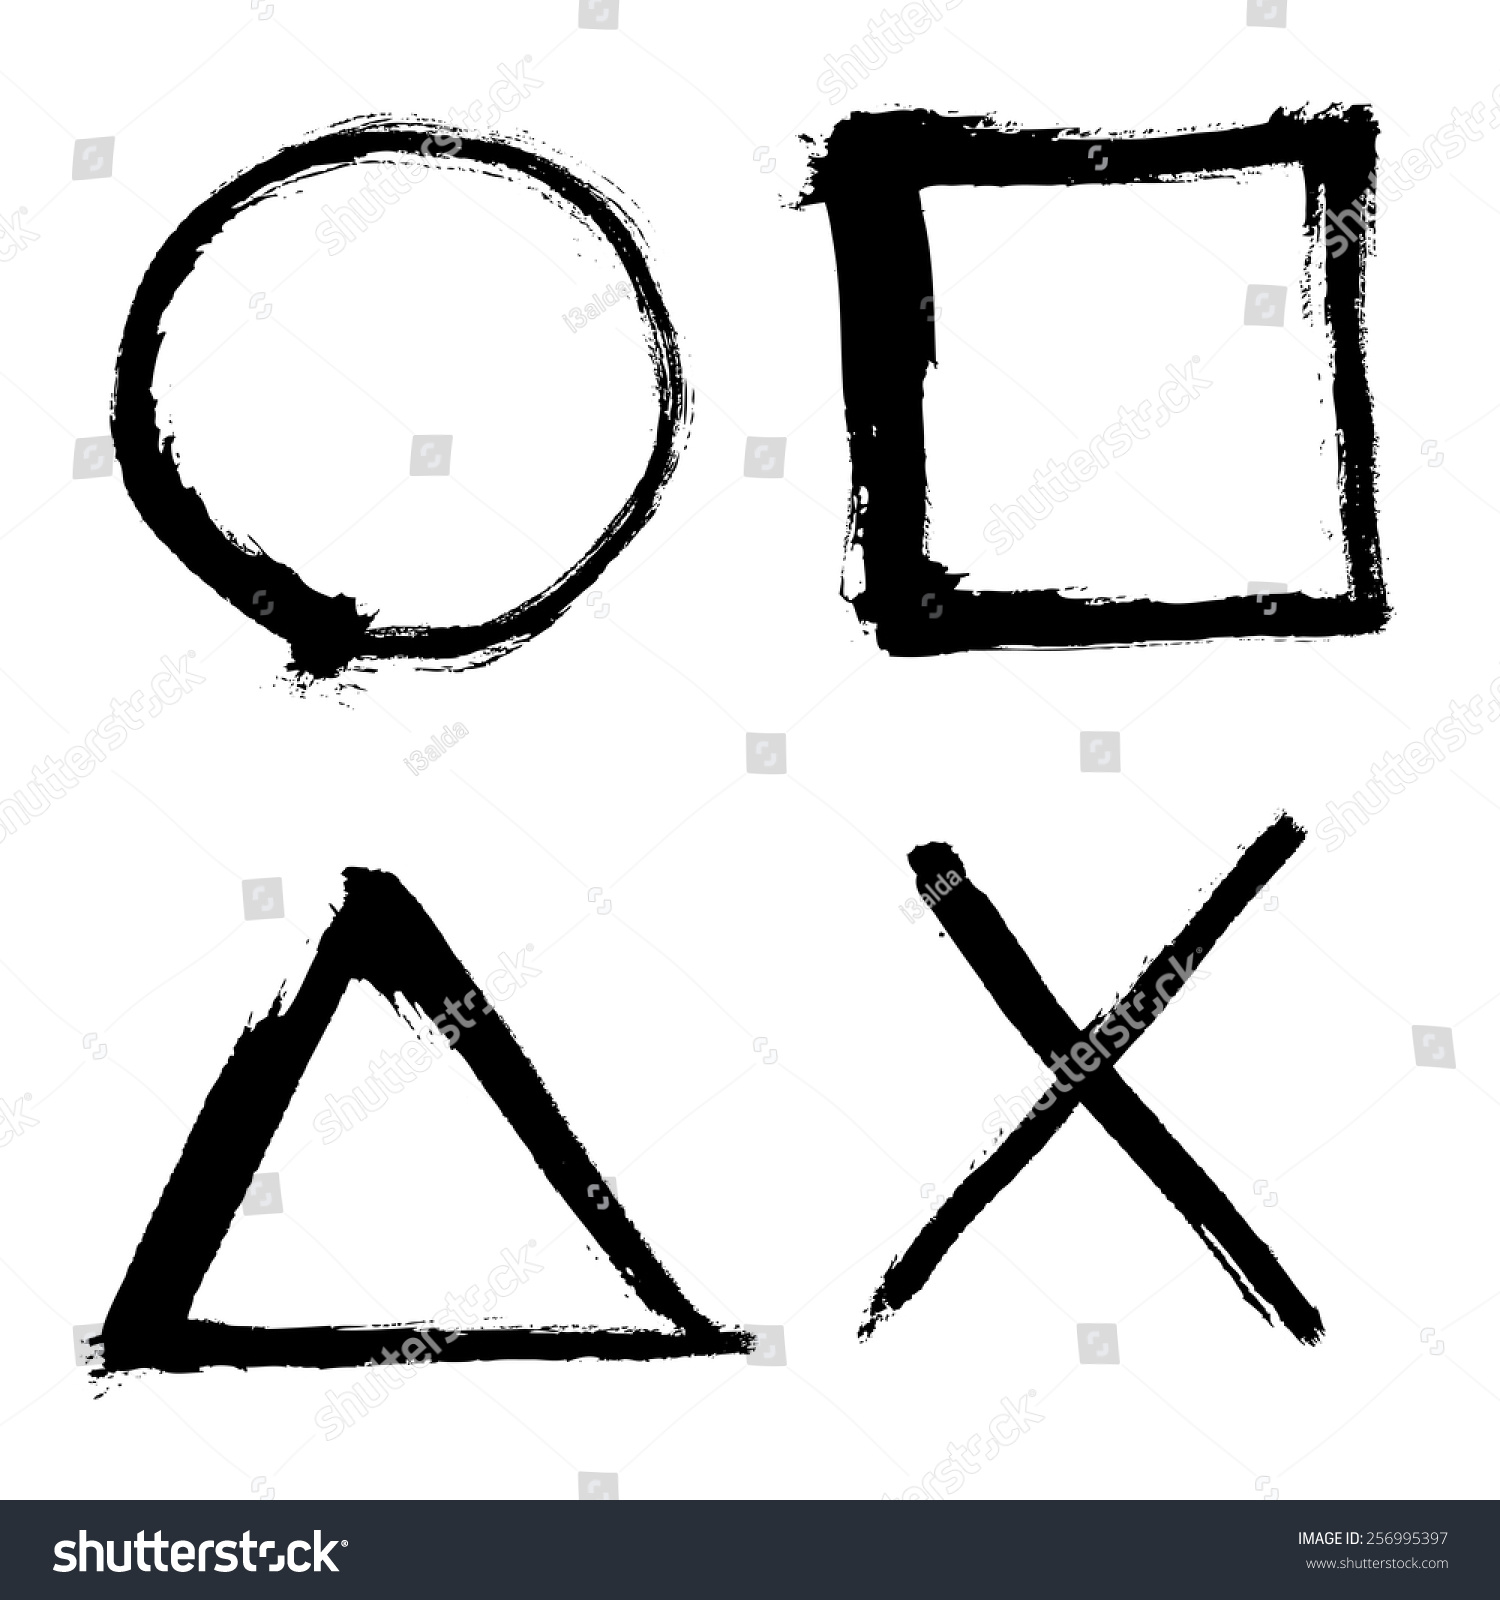 Outlined Square Circle Triangle Elements Stock Photo Photo Vector